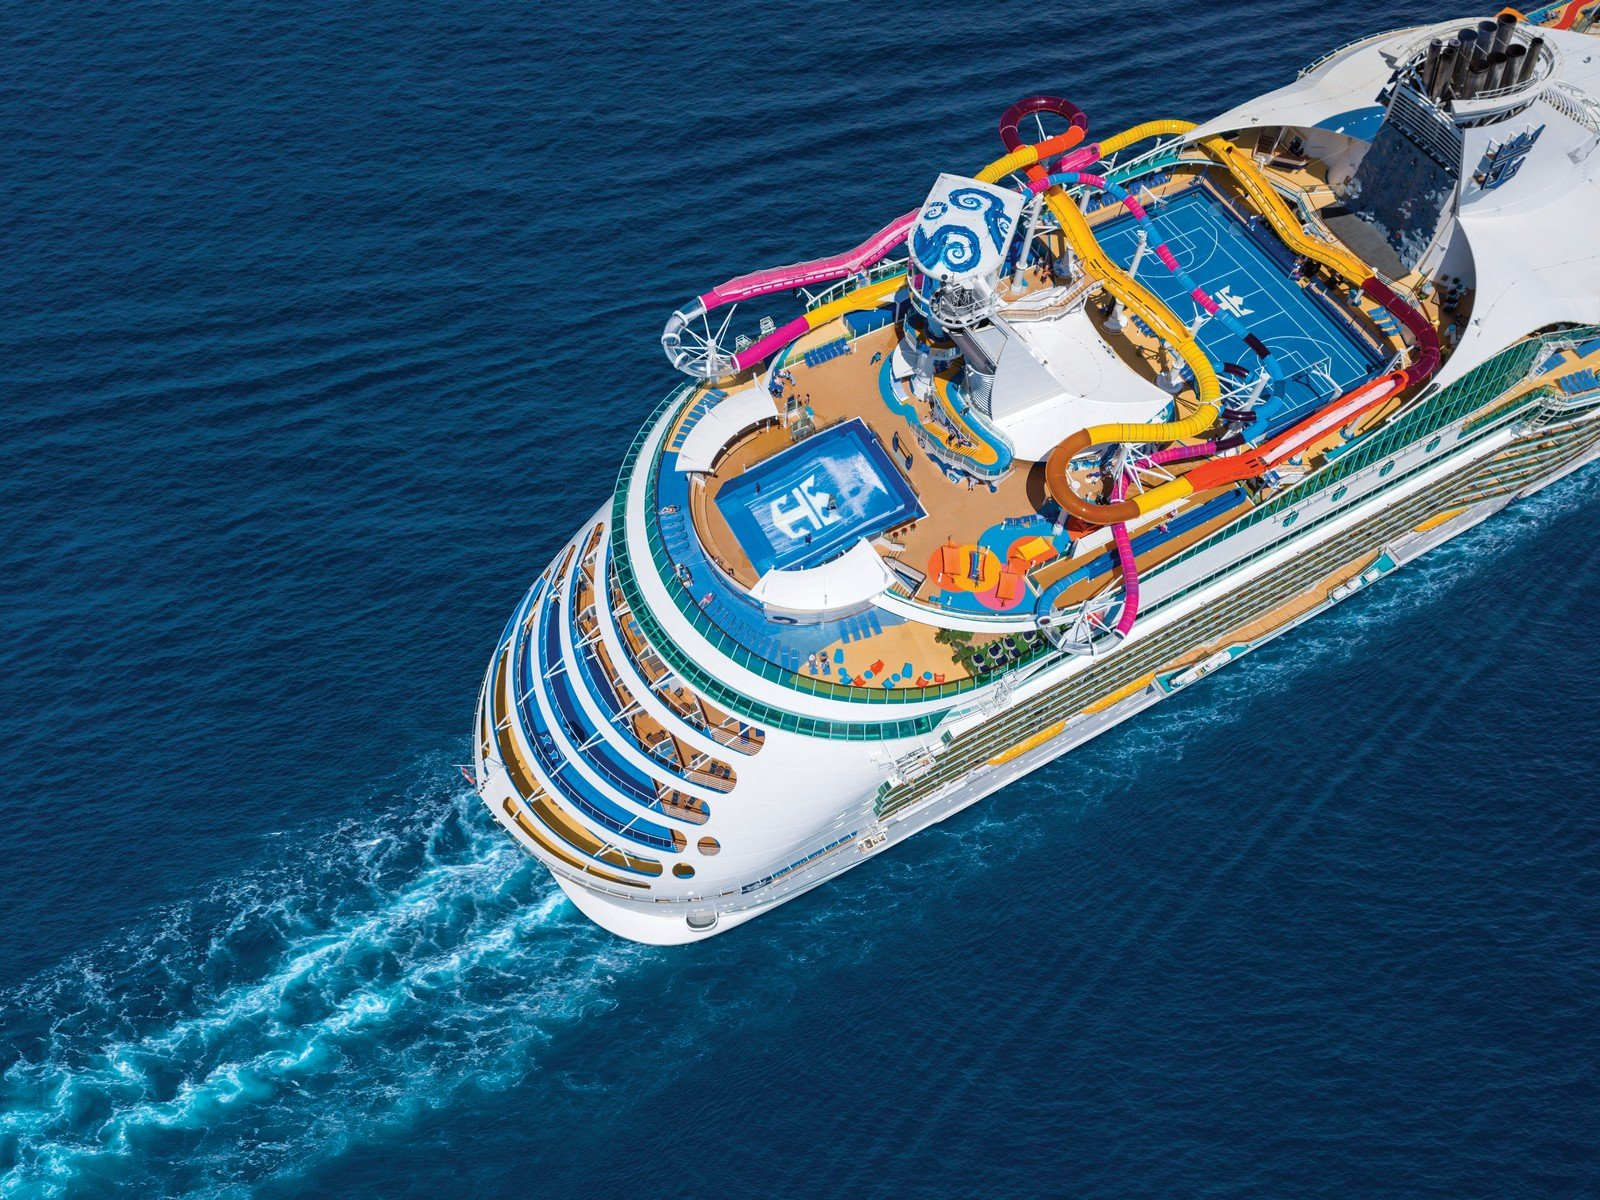 New Navigator of the Seas west coast cruises now available to book